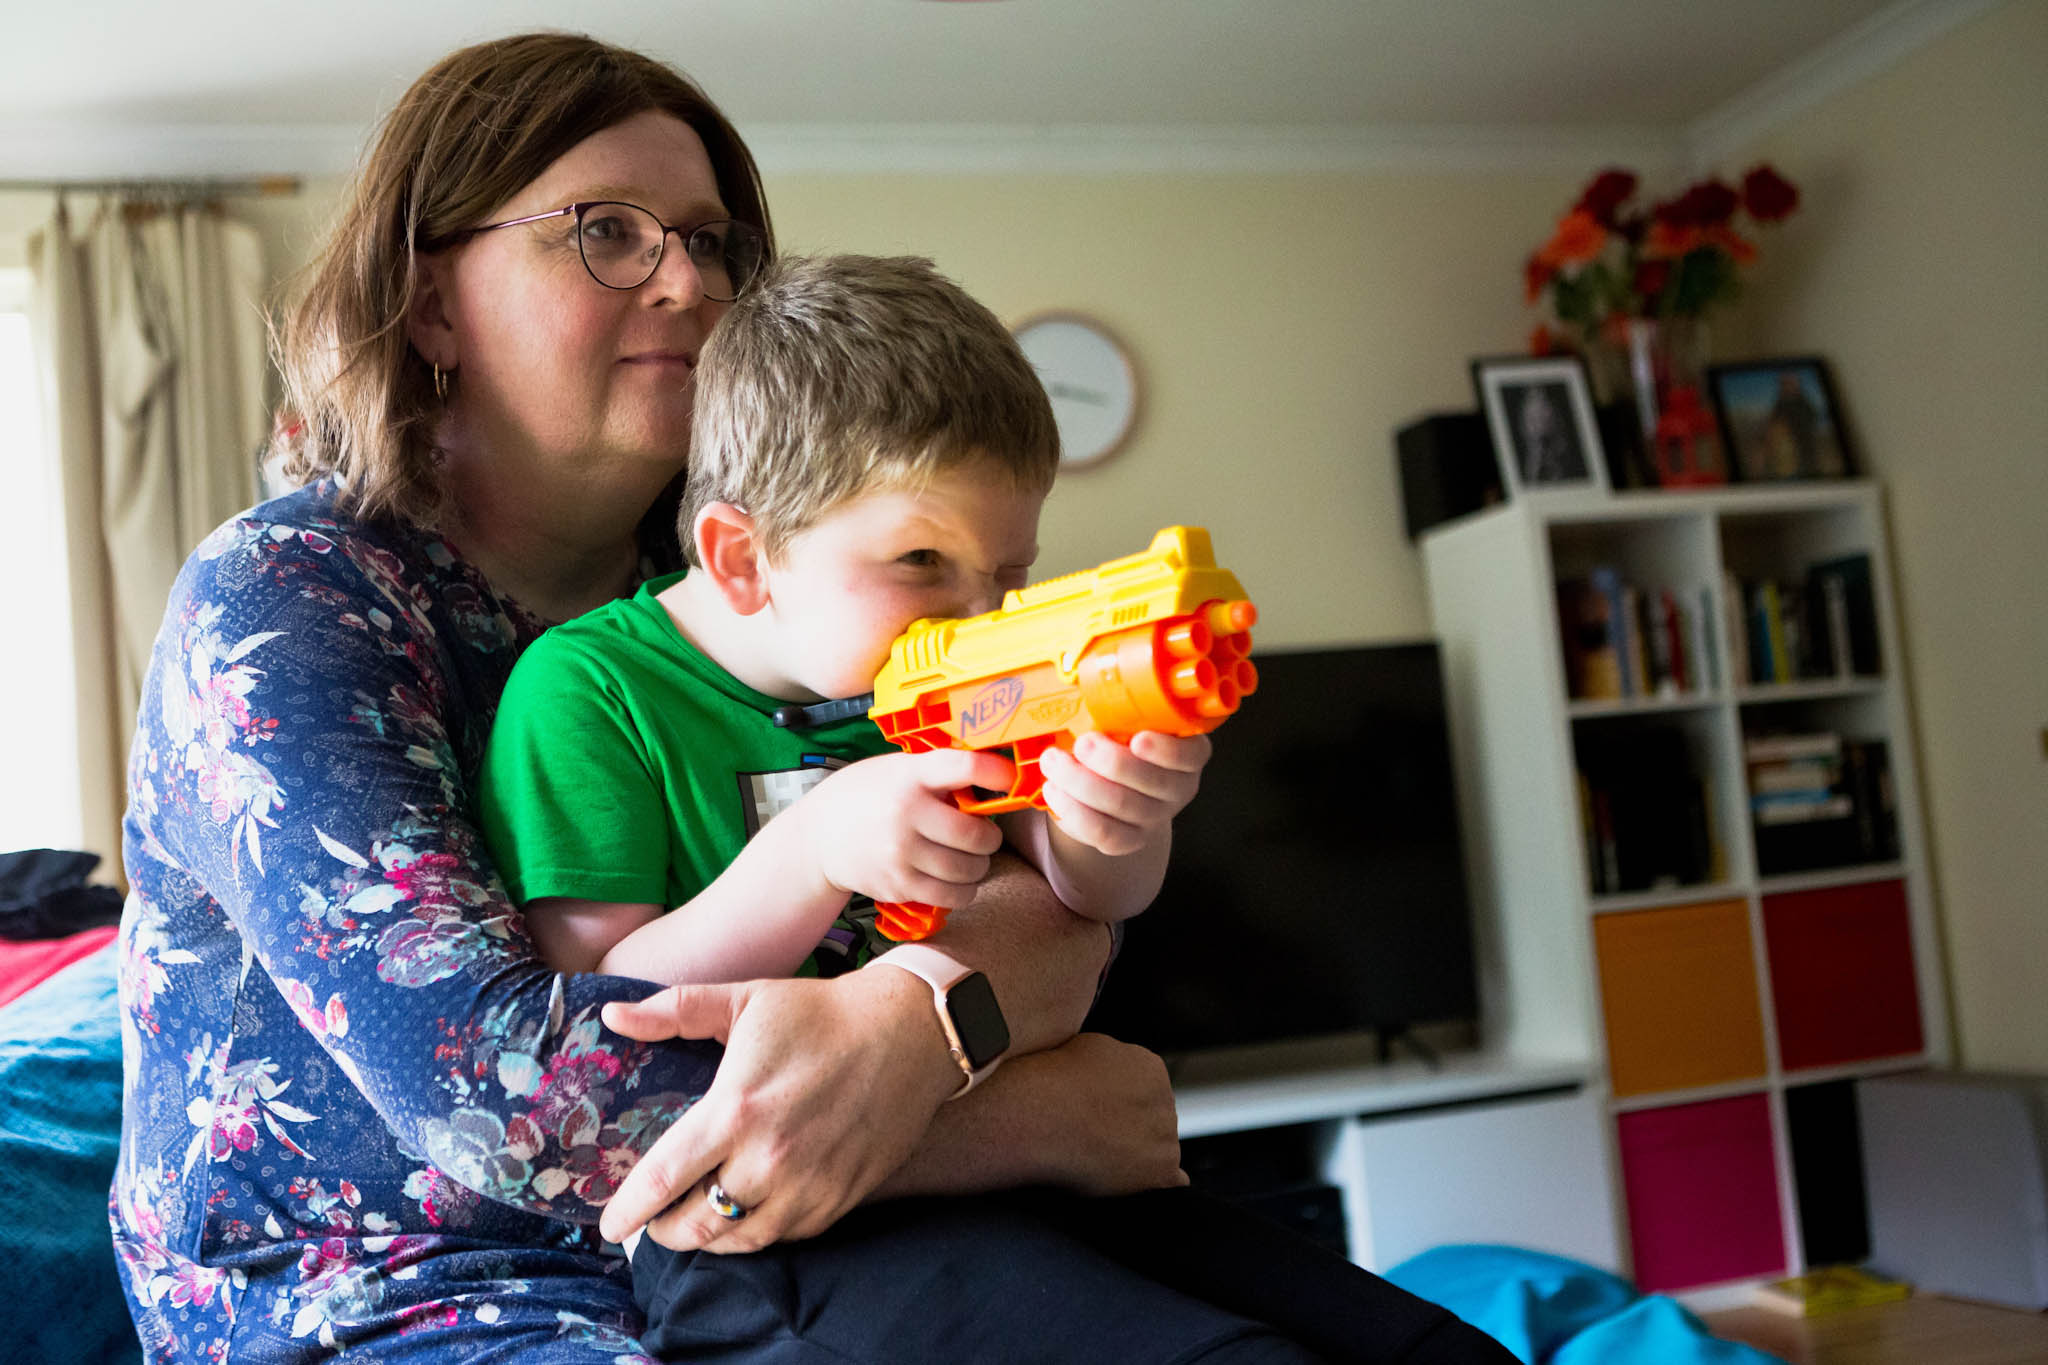 Trans father holding son playing with toy gun